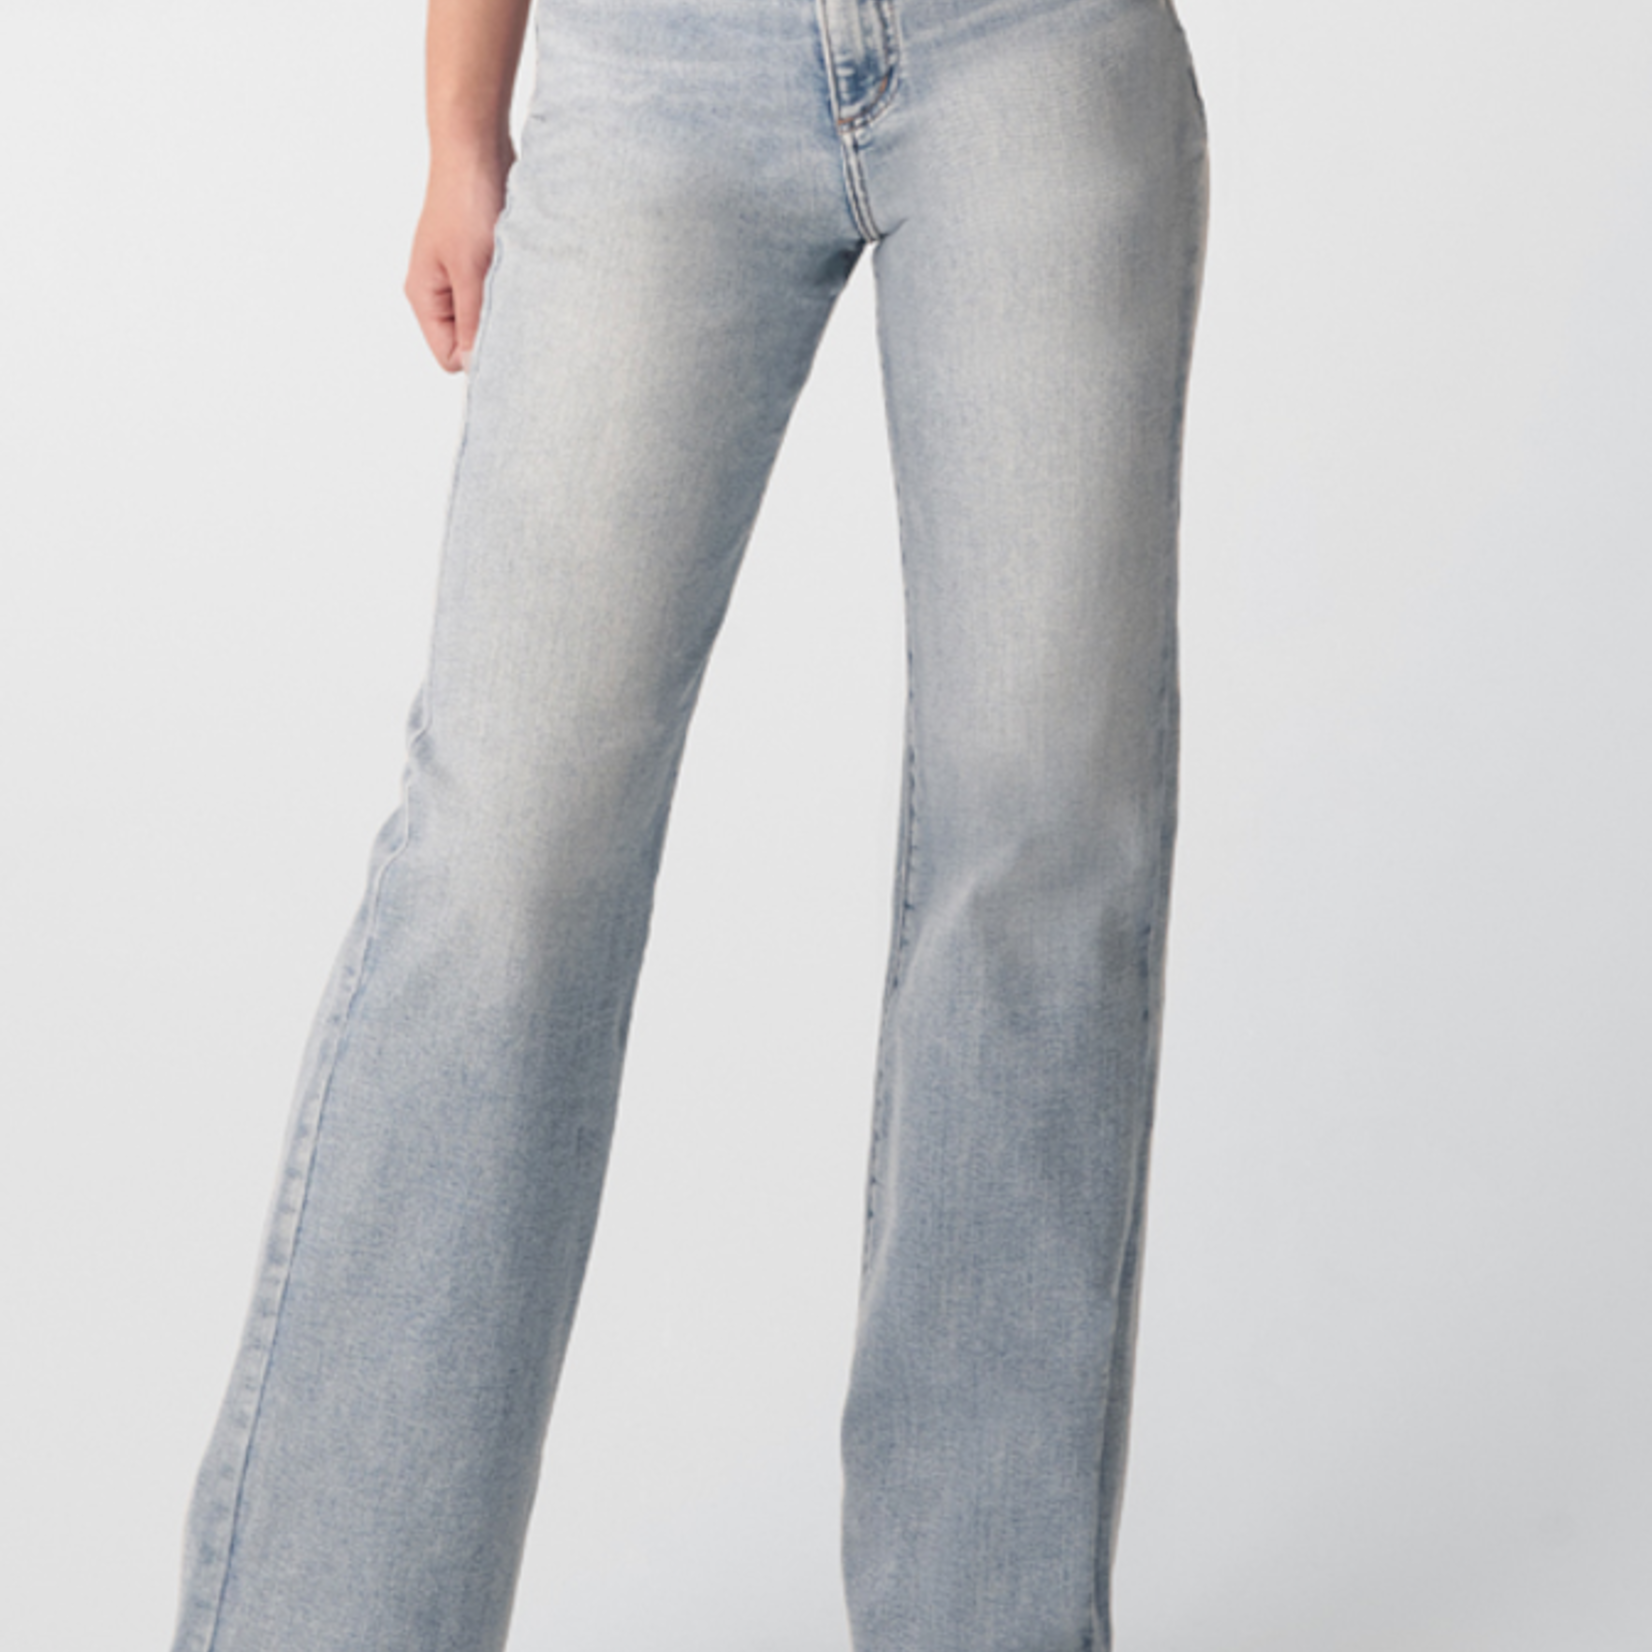 Silver Jeans Co. Highly Desirable Trouser